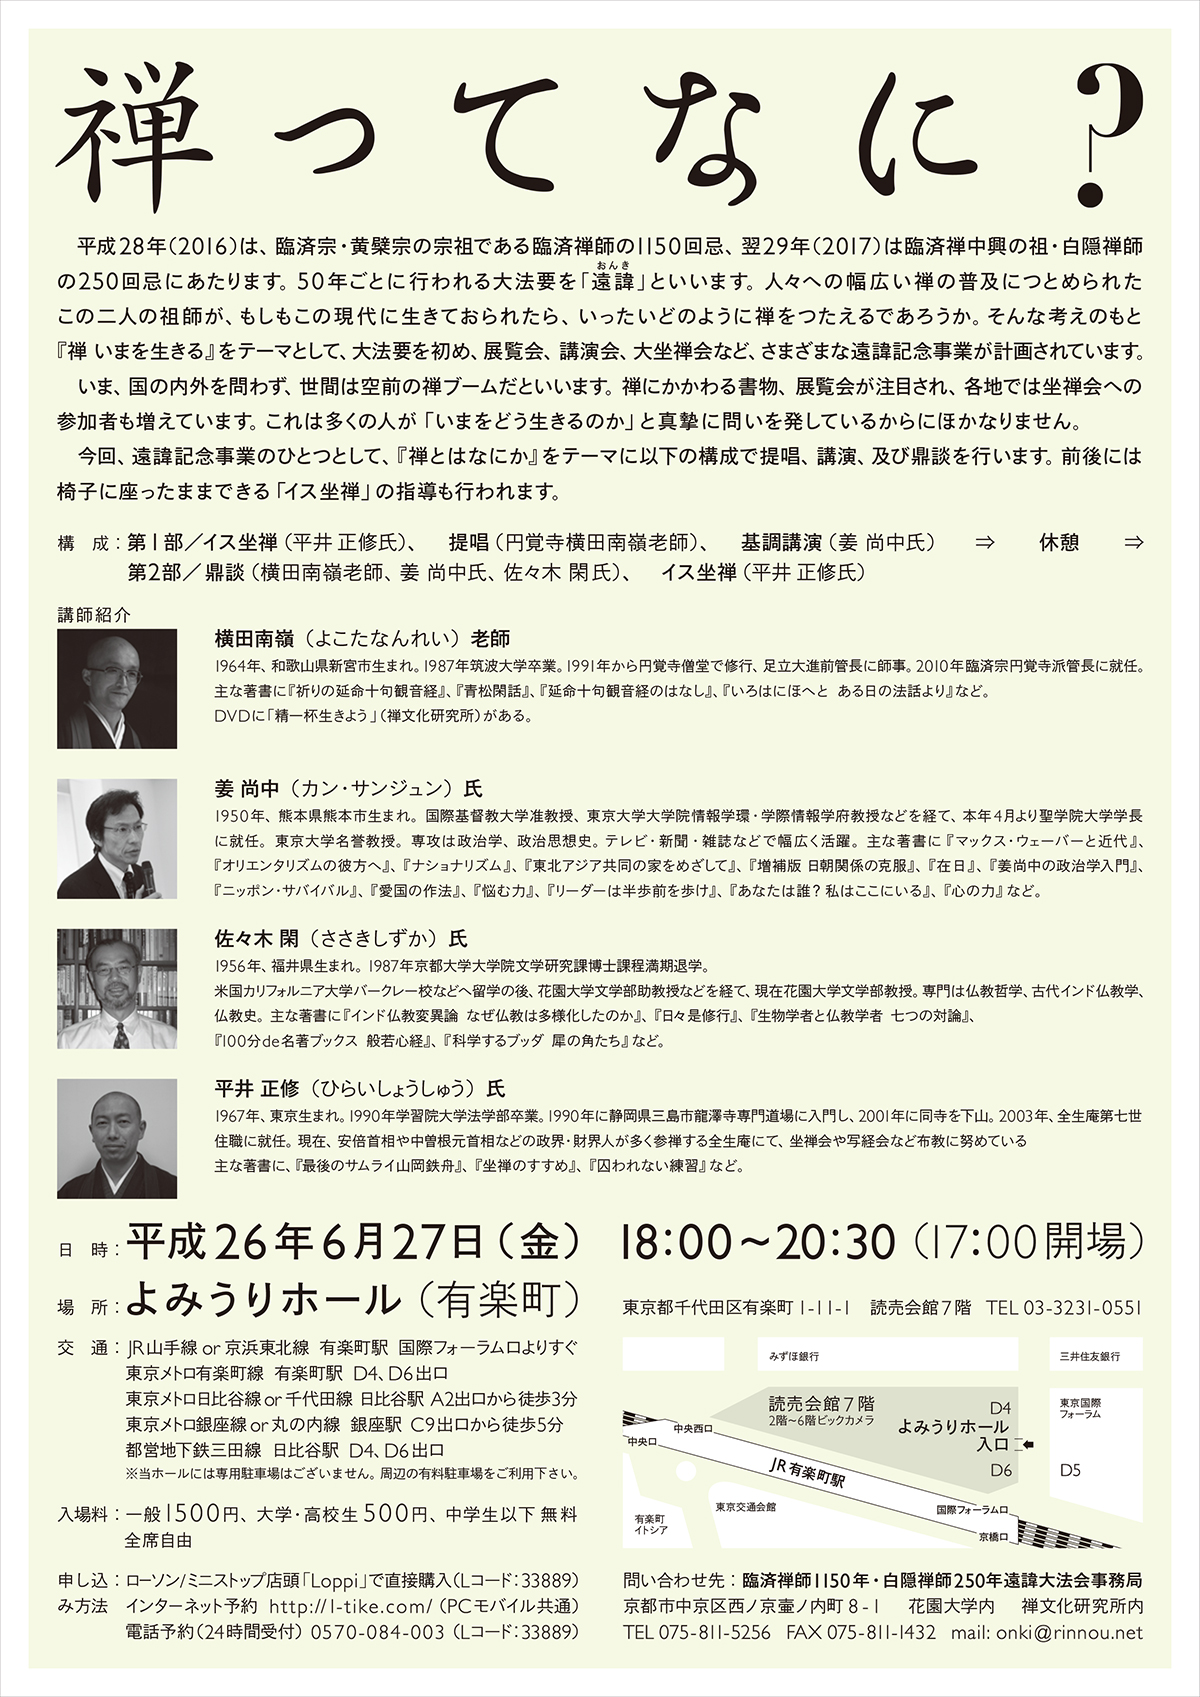 http://rinnou.net/rinzai1150/images/20140627lecture2.jpg